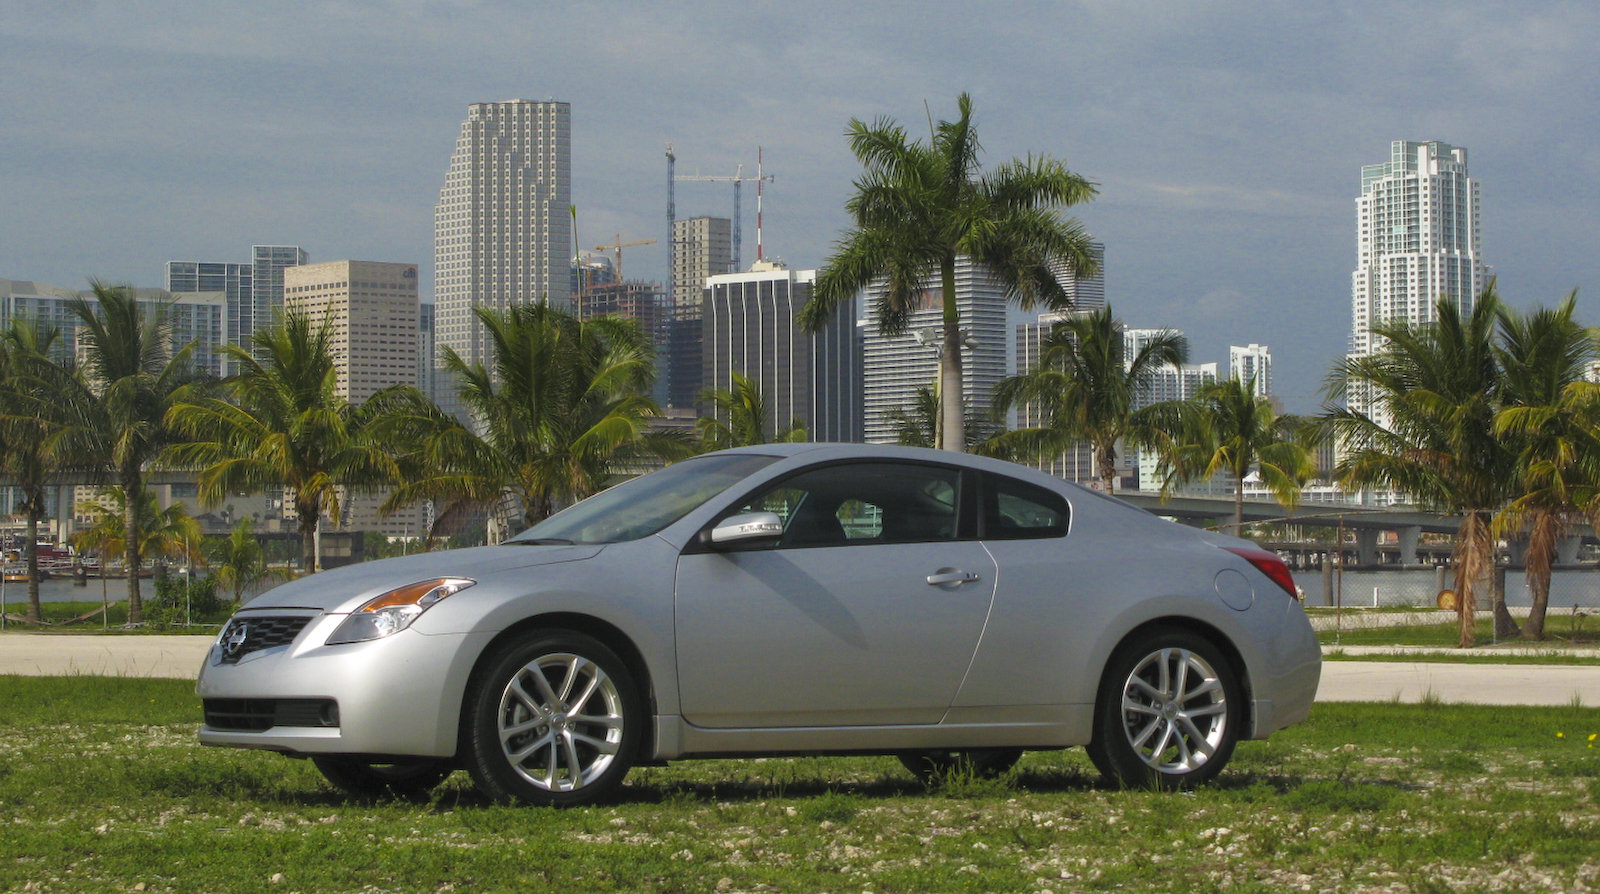 2009 nissan altima coupe 3 5 se picture 303319 car review top speed. Black Bedroom Furniture Sets. Home Design Ideas